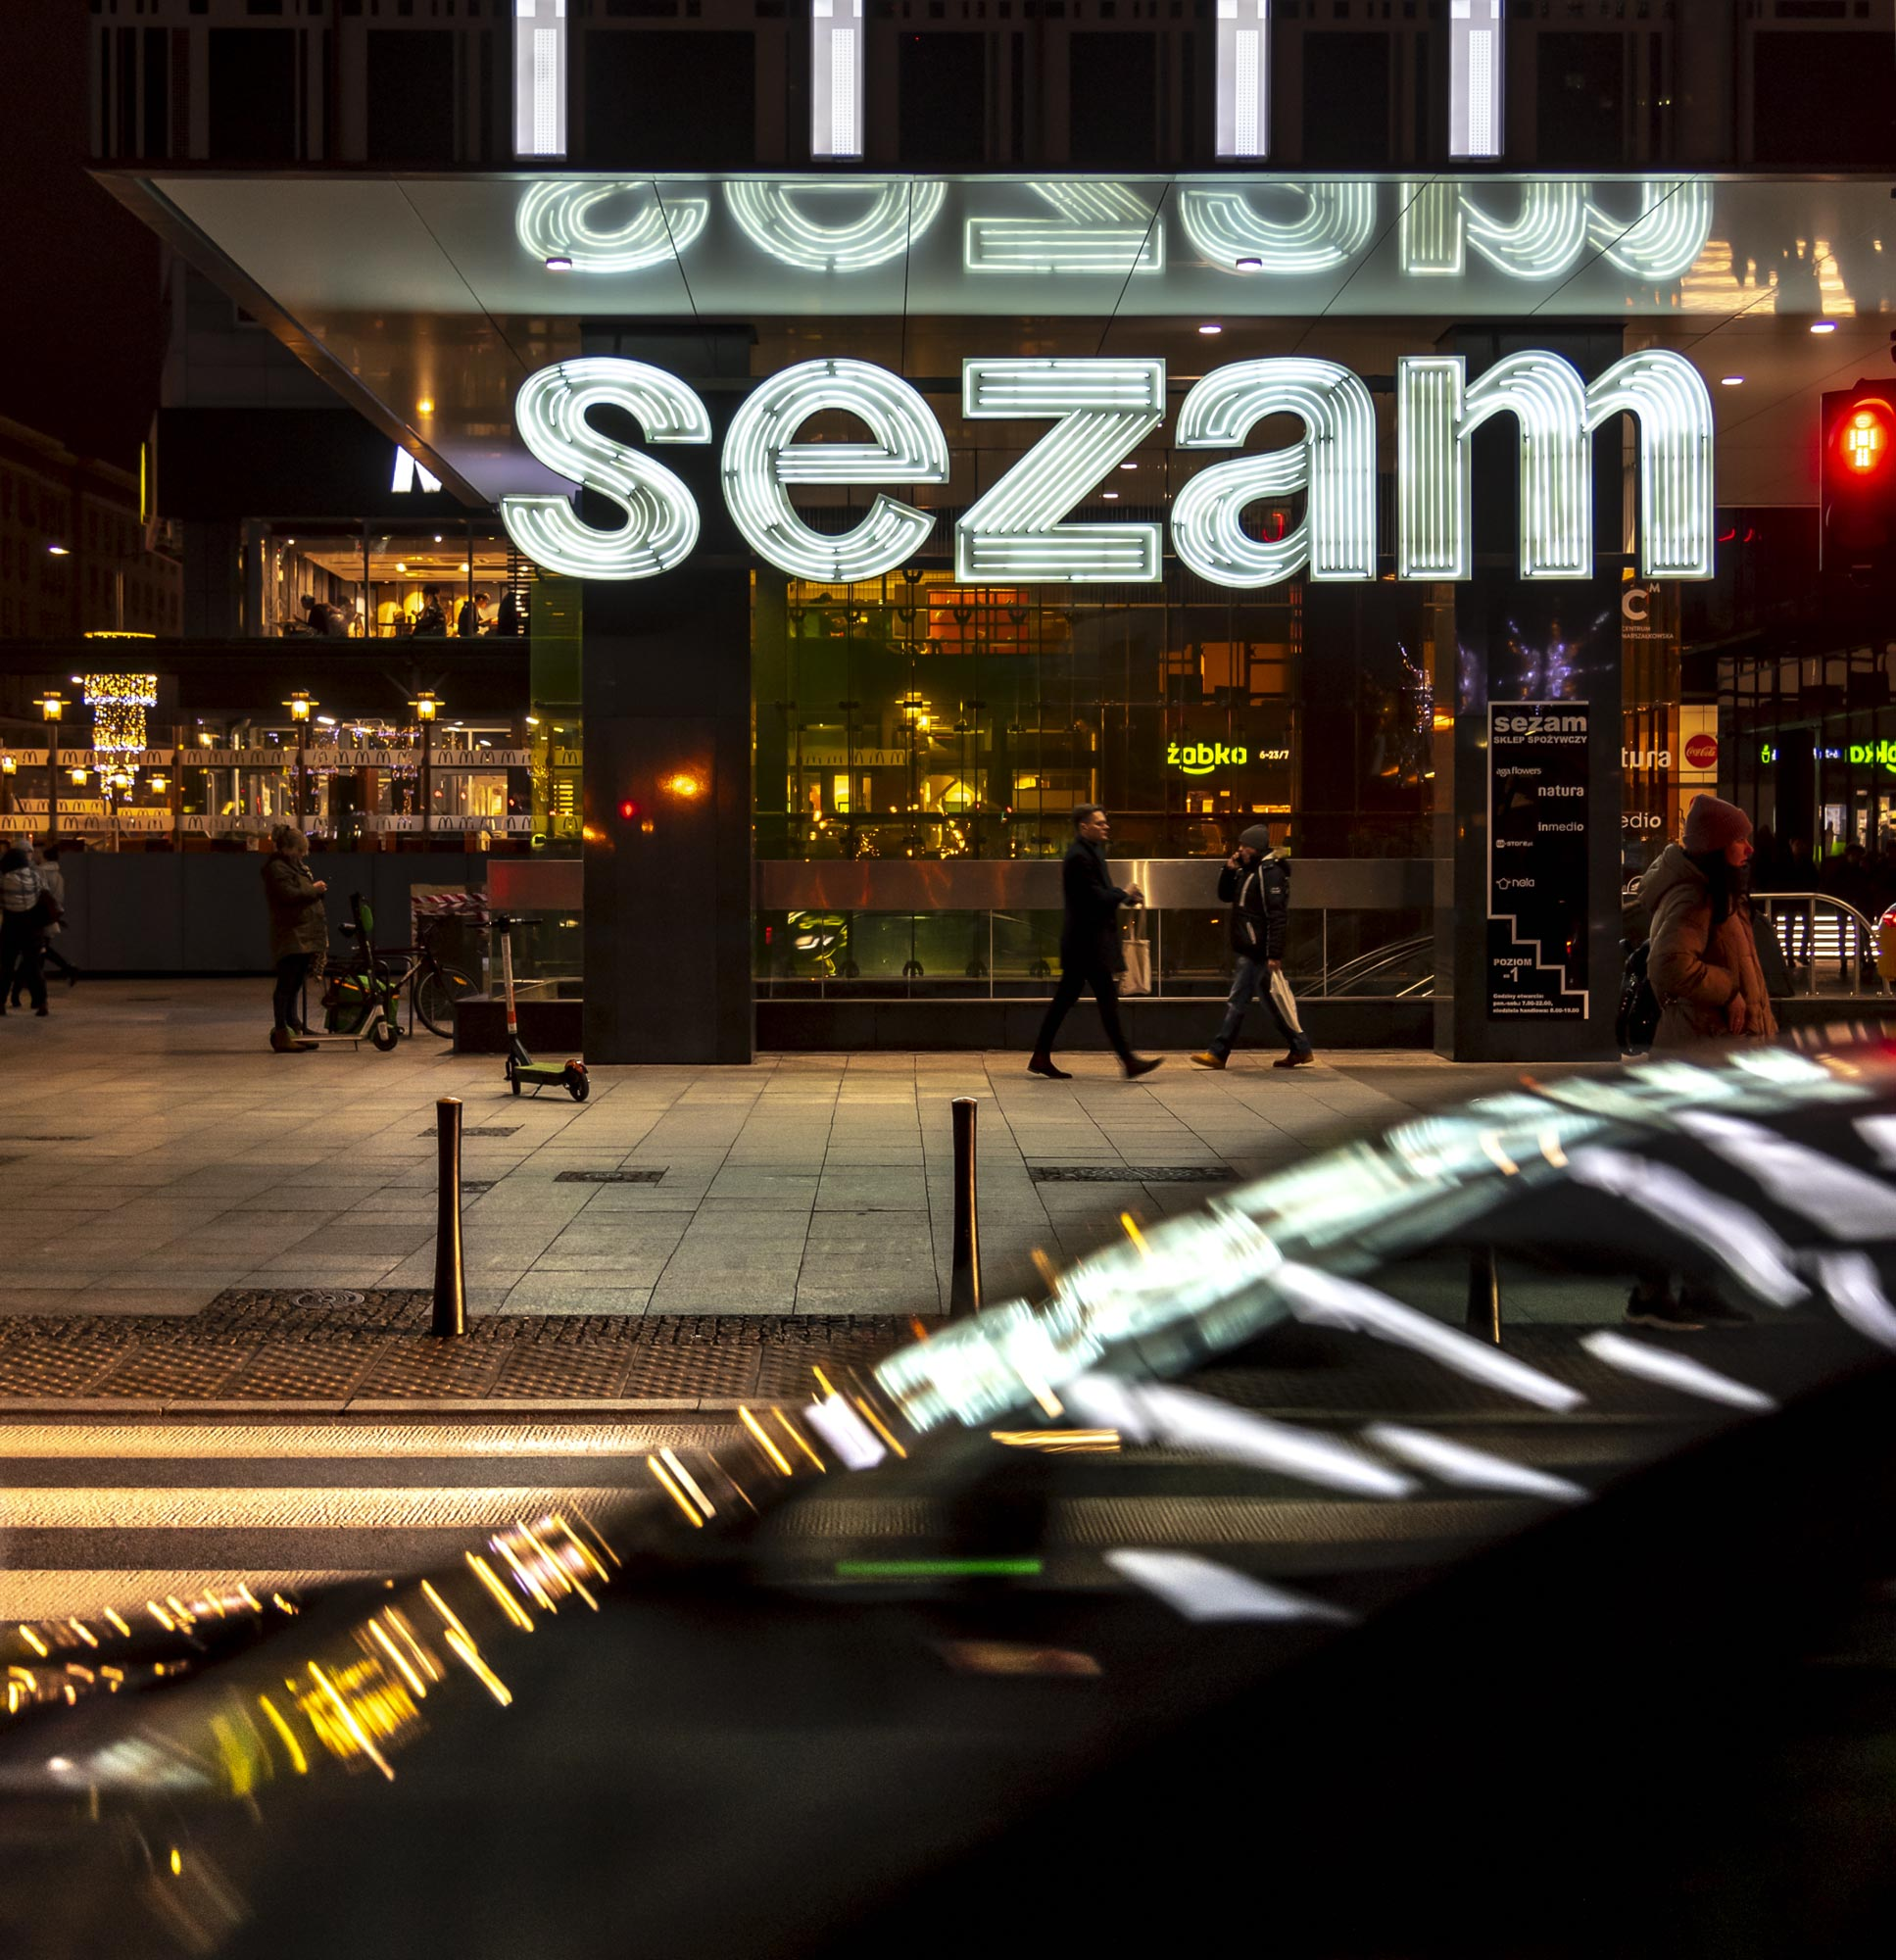 Instagram ready images -Sezam neon sign and car - After